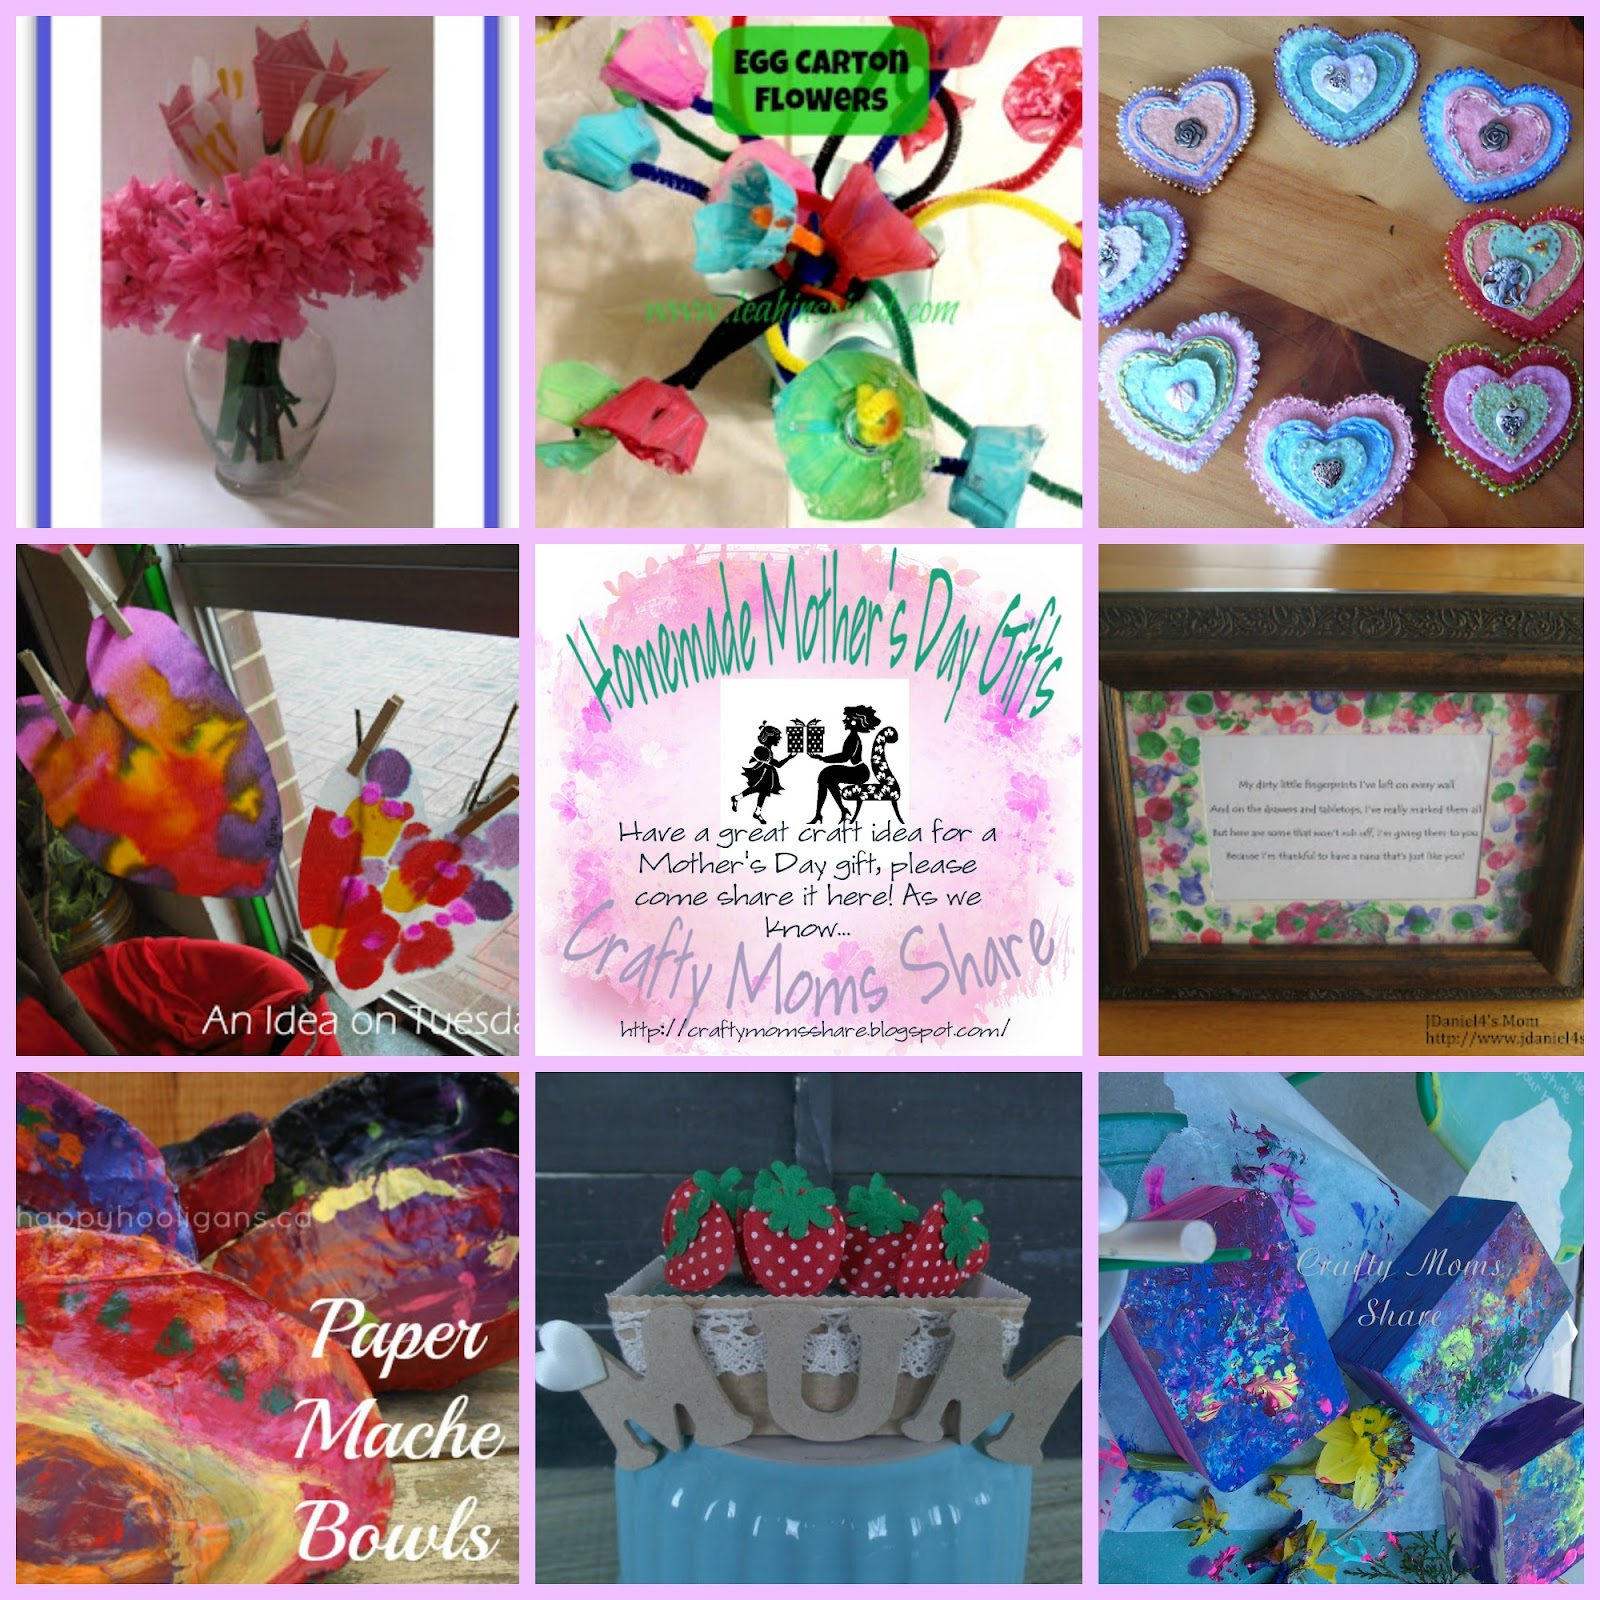 crafty moms share homemade mother s day gift ideas